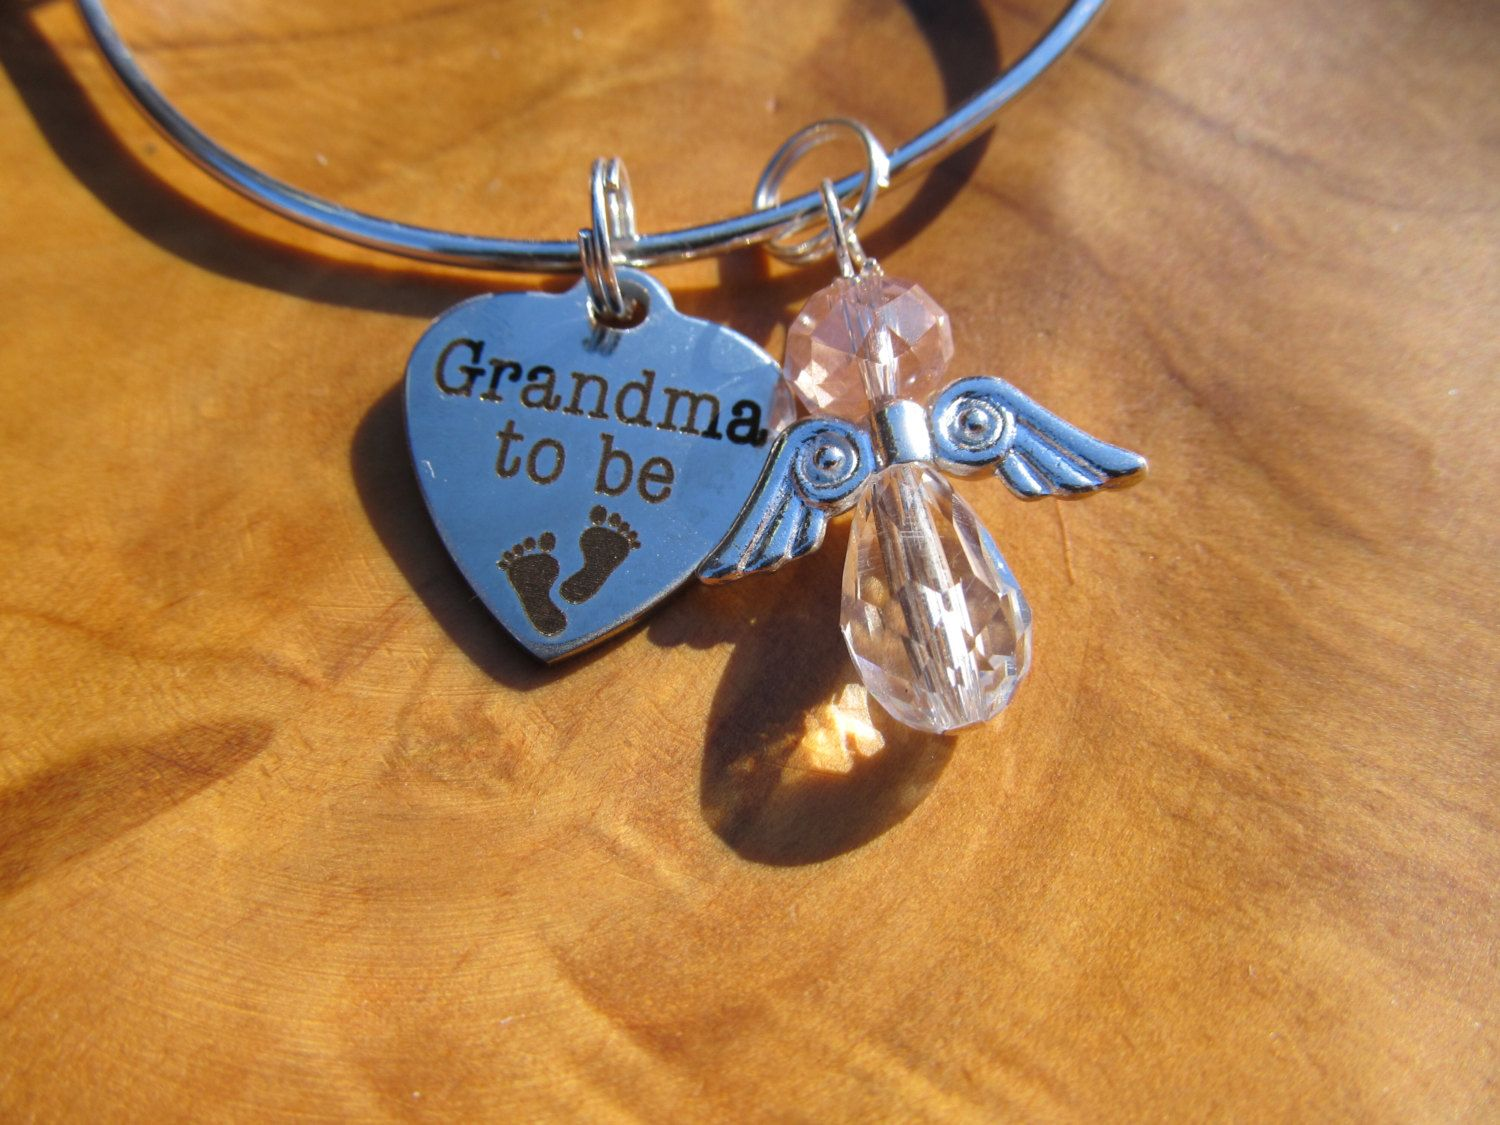 CHRISTMAS - Grandmother, Grandma to BE - Personalize with Girl or Boy Angel - Great Gift for New Grandma to Be - Reveal Party #newgrandma